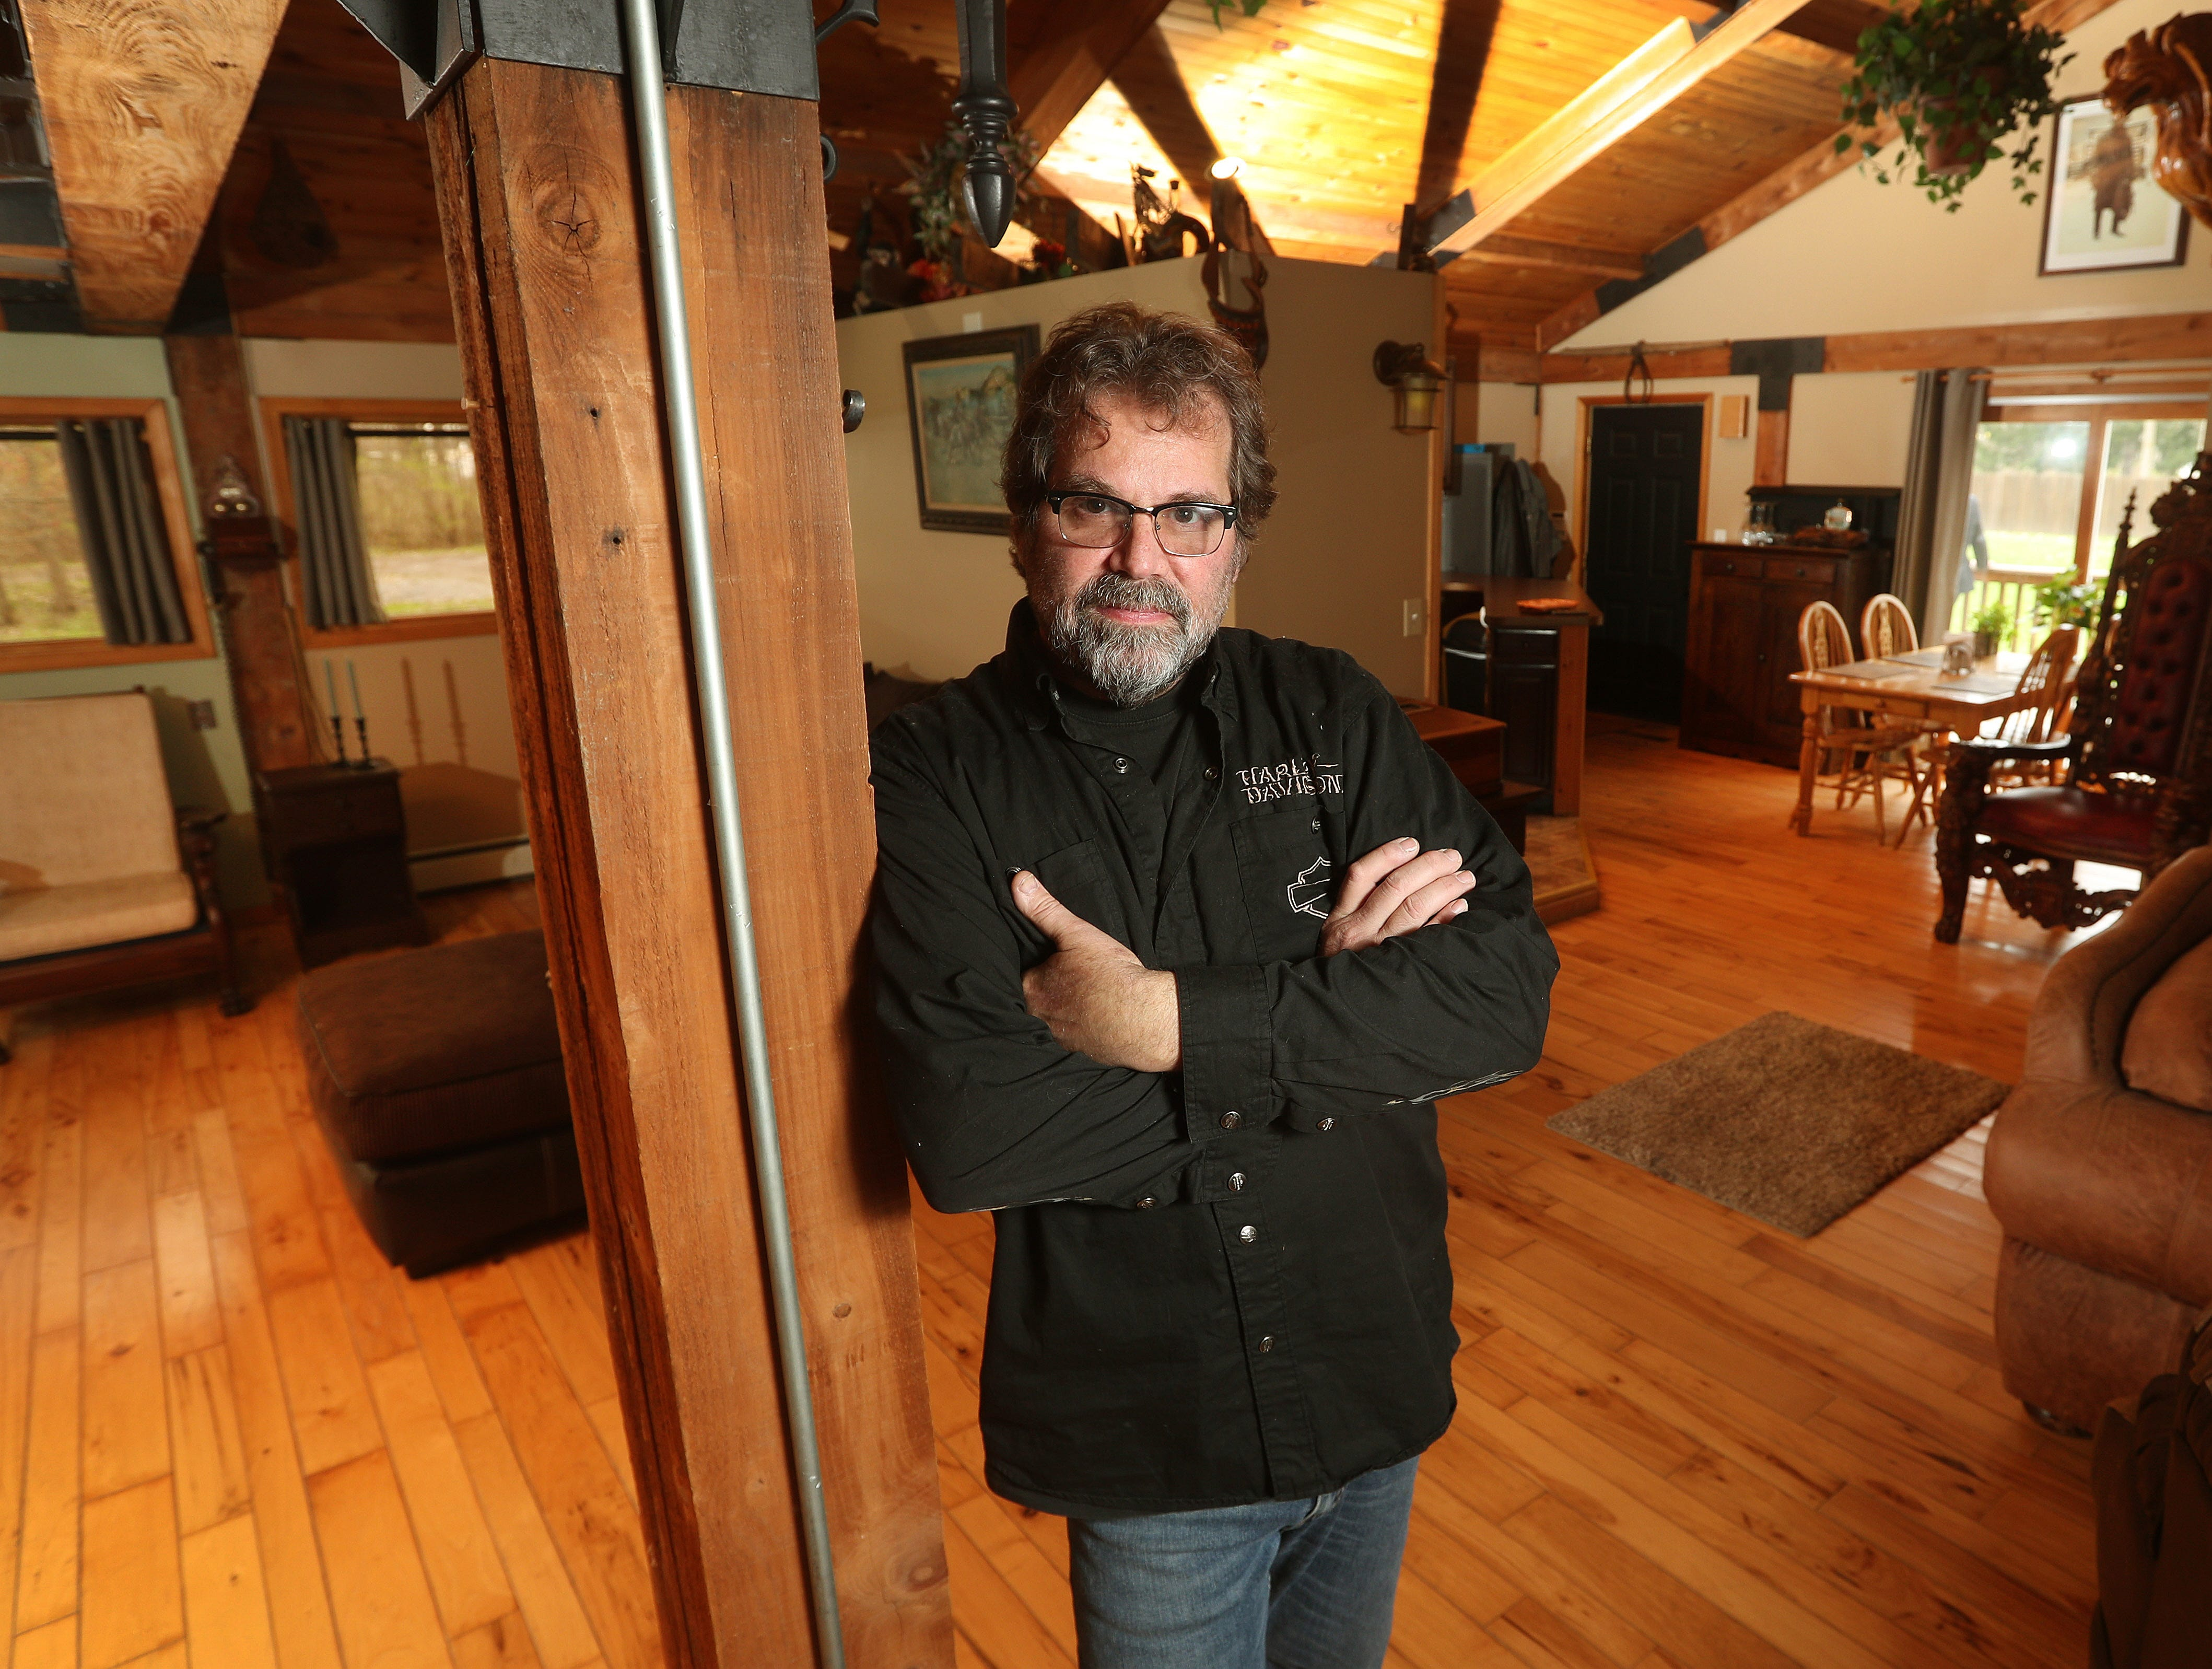 Jesse Steffan built his dream house in 1996 on 3.6 acres of land.